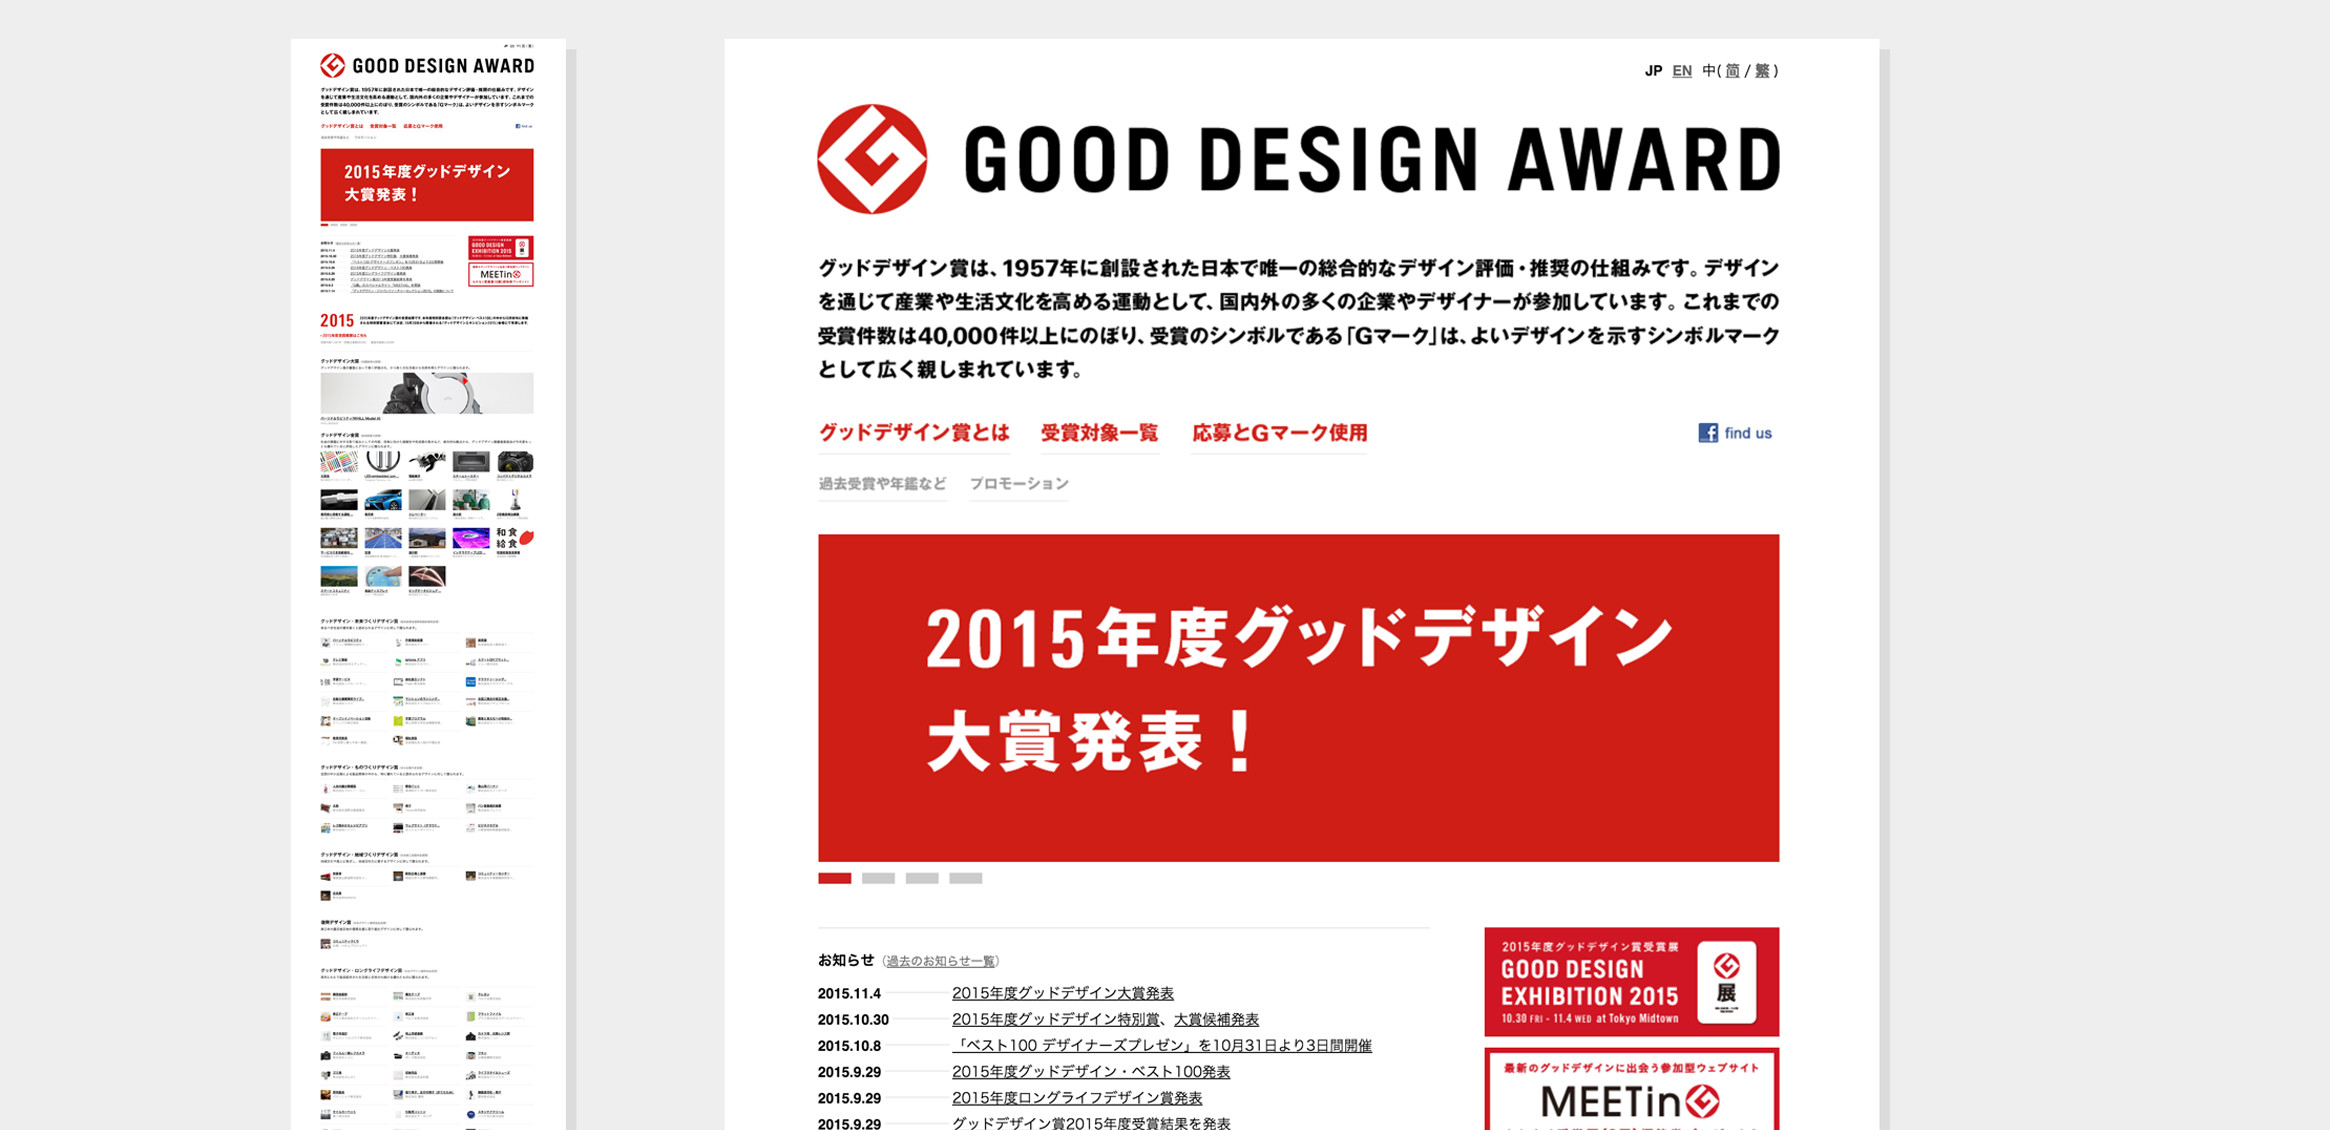 Good Design Award0枚目